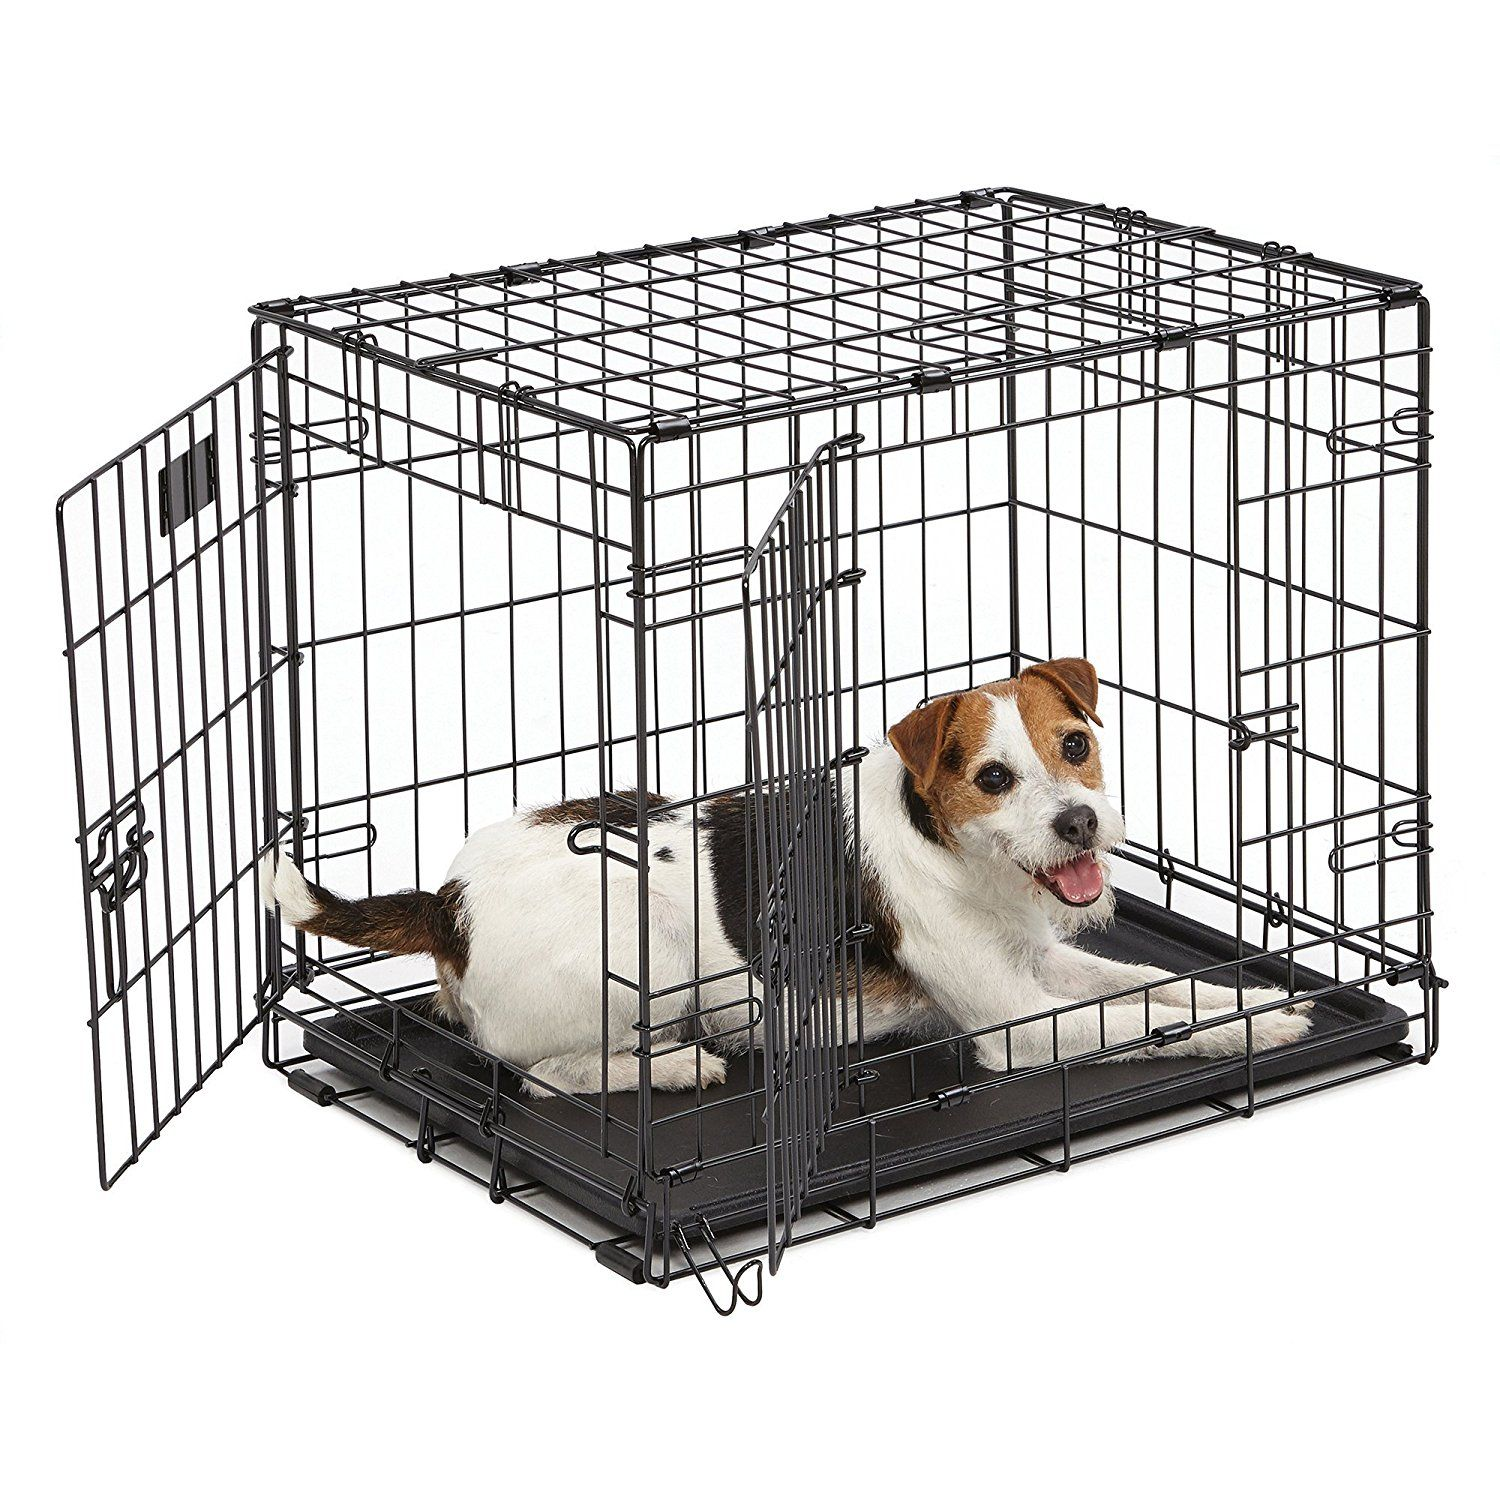 Midwest Icrate Dbl Door Folding Dog Crate 24x18x19 Be Sure To Check Out This Awesome Product This Is An A Dog Playpen Dog Cages